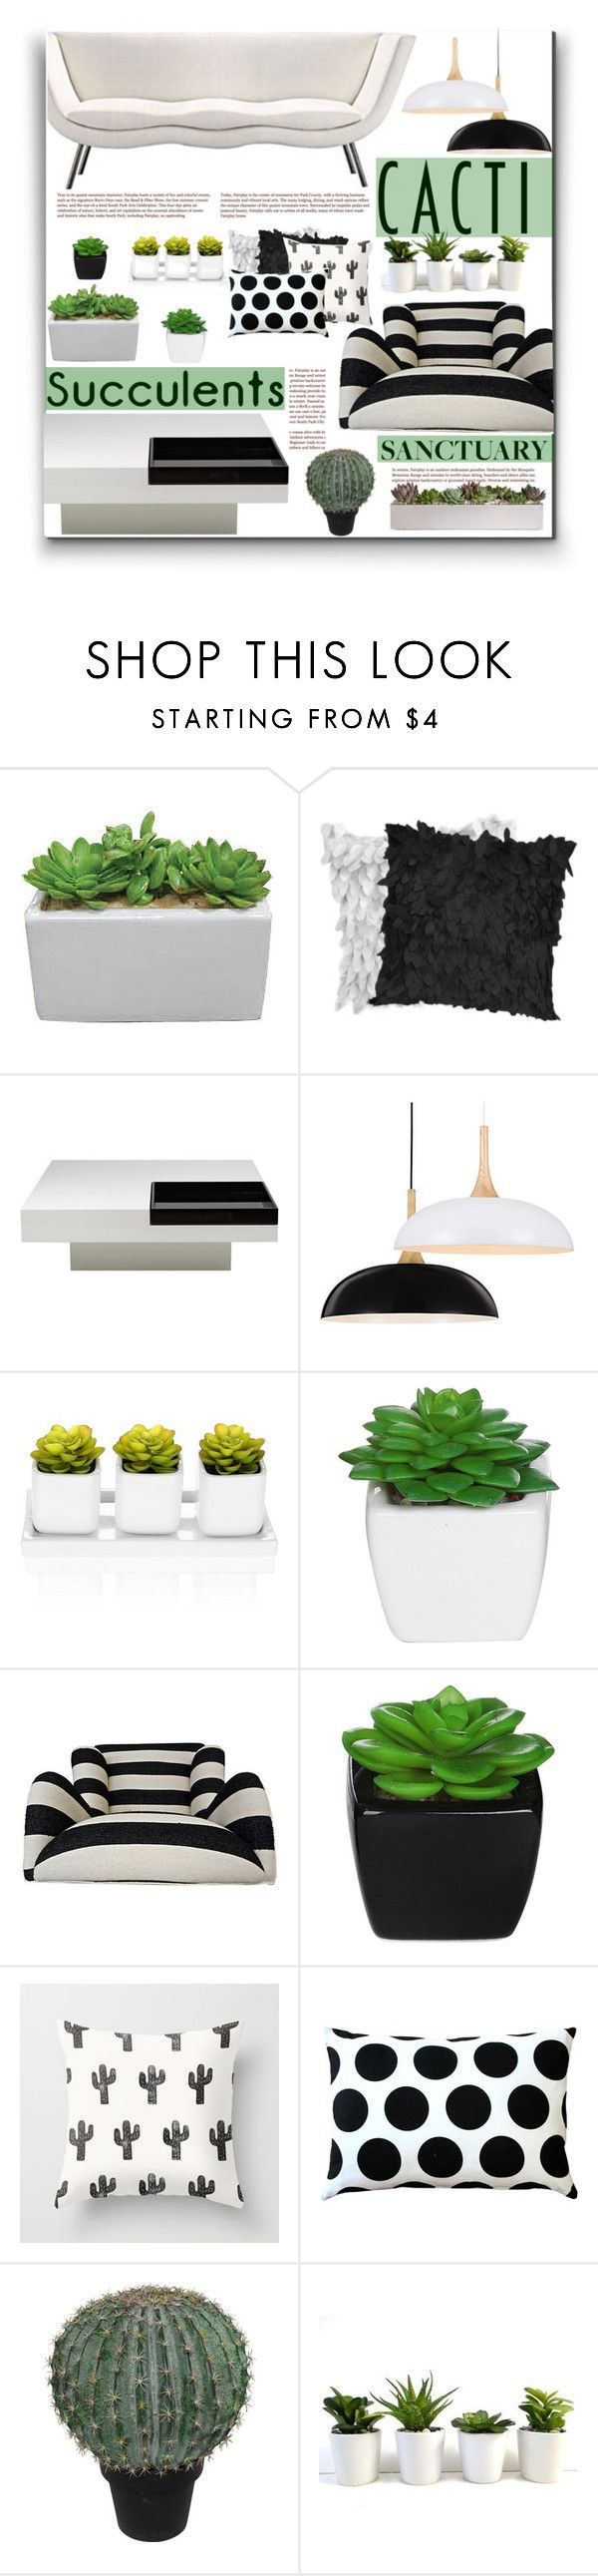 """""""Cacti and Succulents"""" by fassionista on Polyvore featuring interior, interiors, interior design, home, home decor, interior decorating, Whiteline Imports, Pillow Decor, Abigail Ahern and decor"""